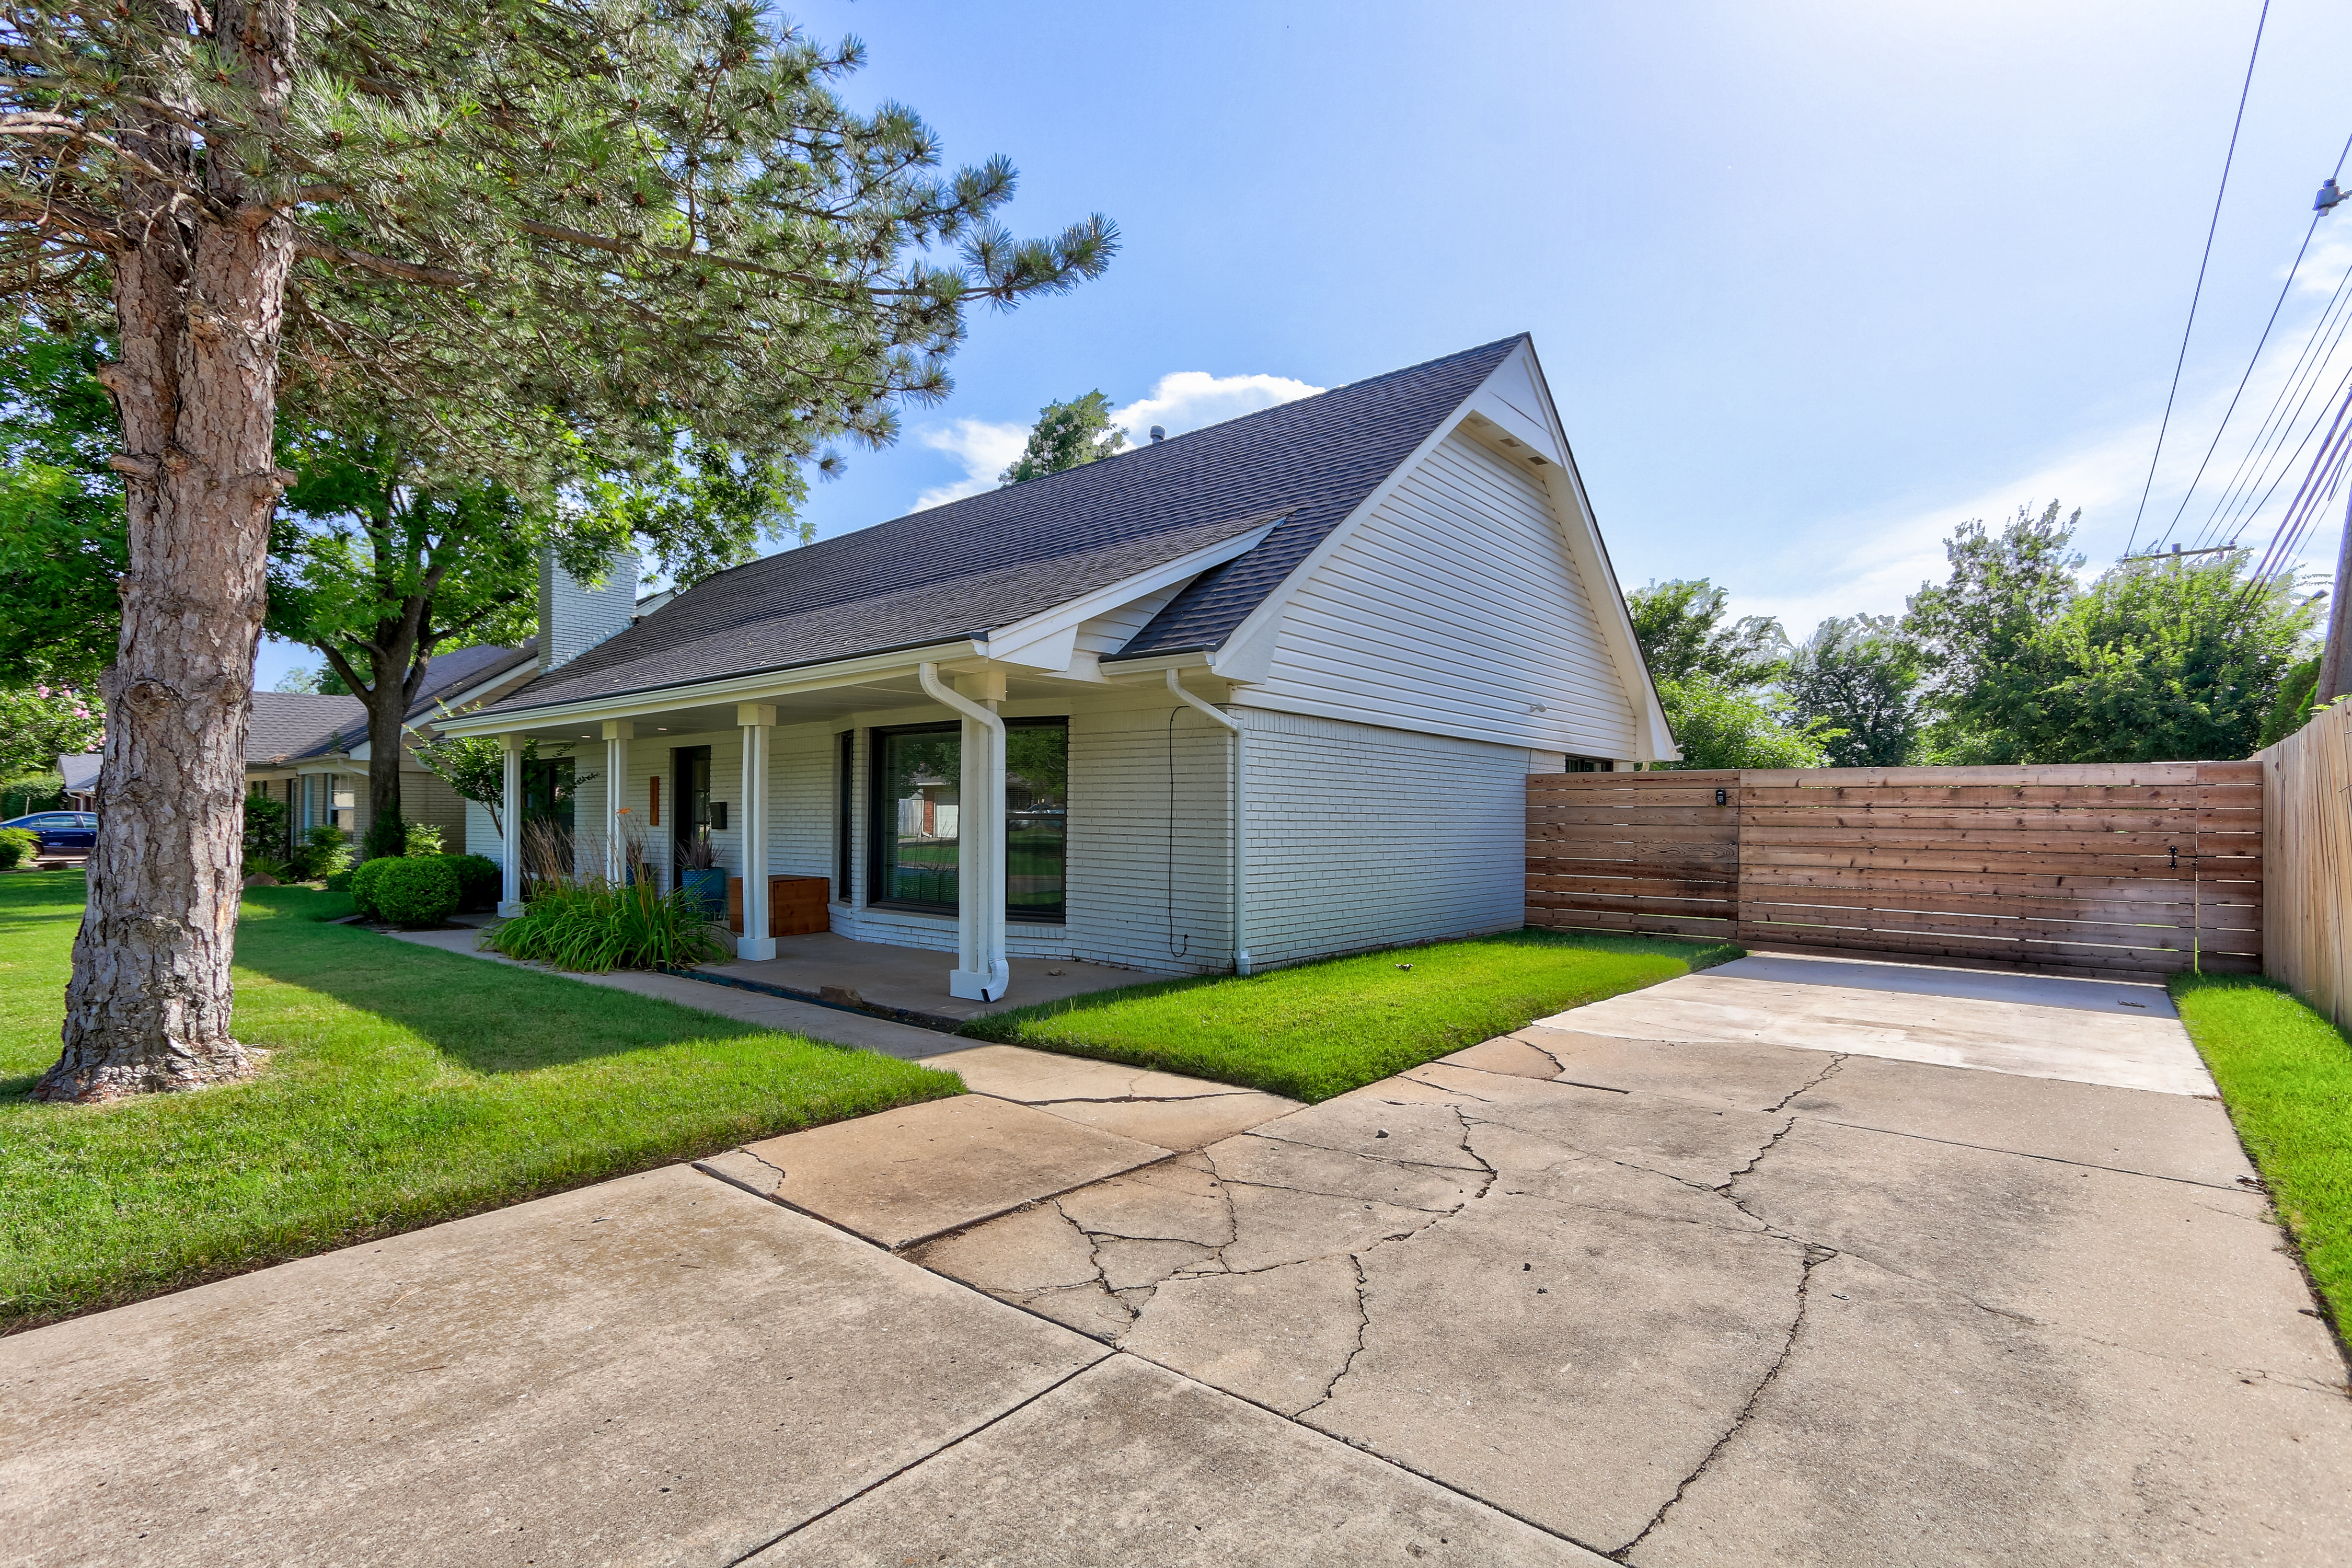 3_8617 greystone avenue, the village, ok